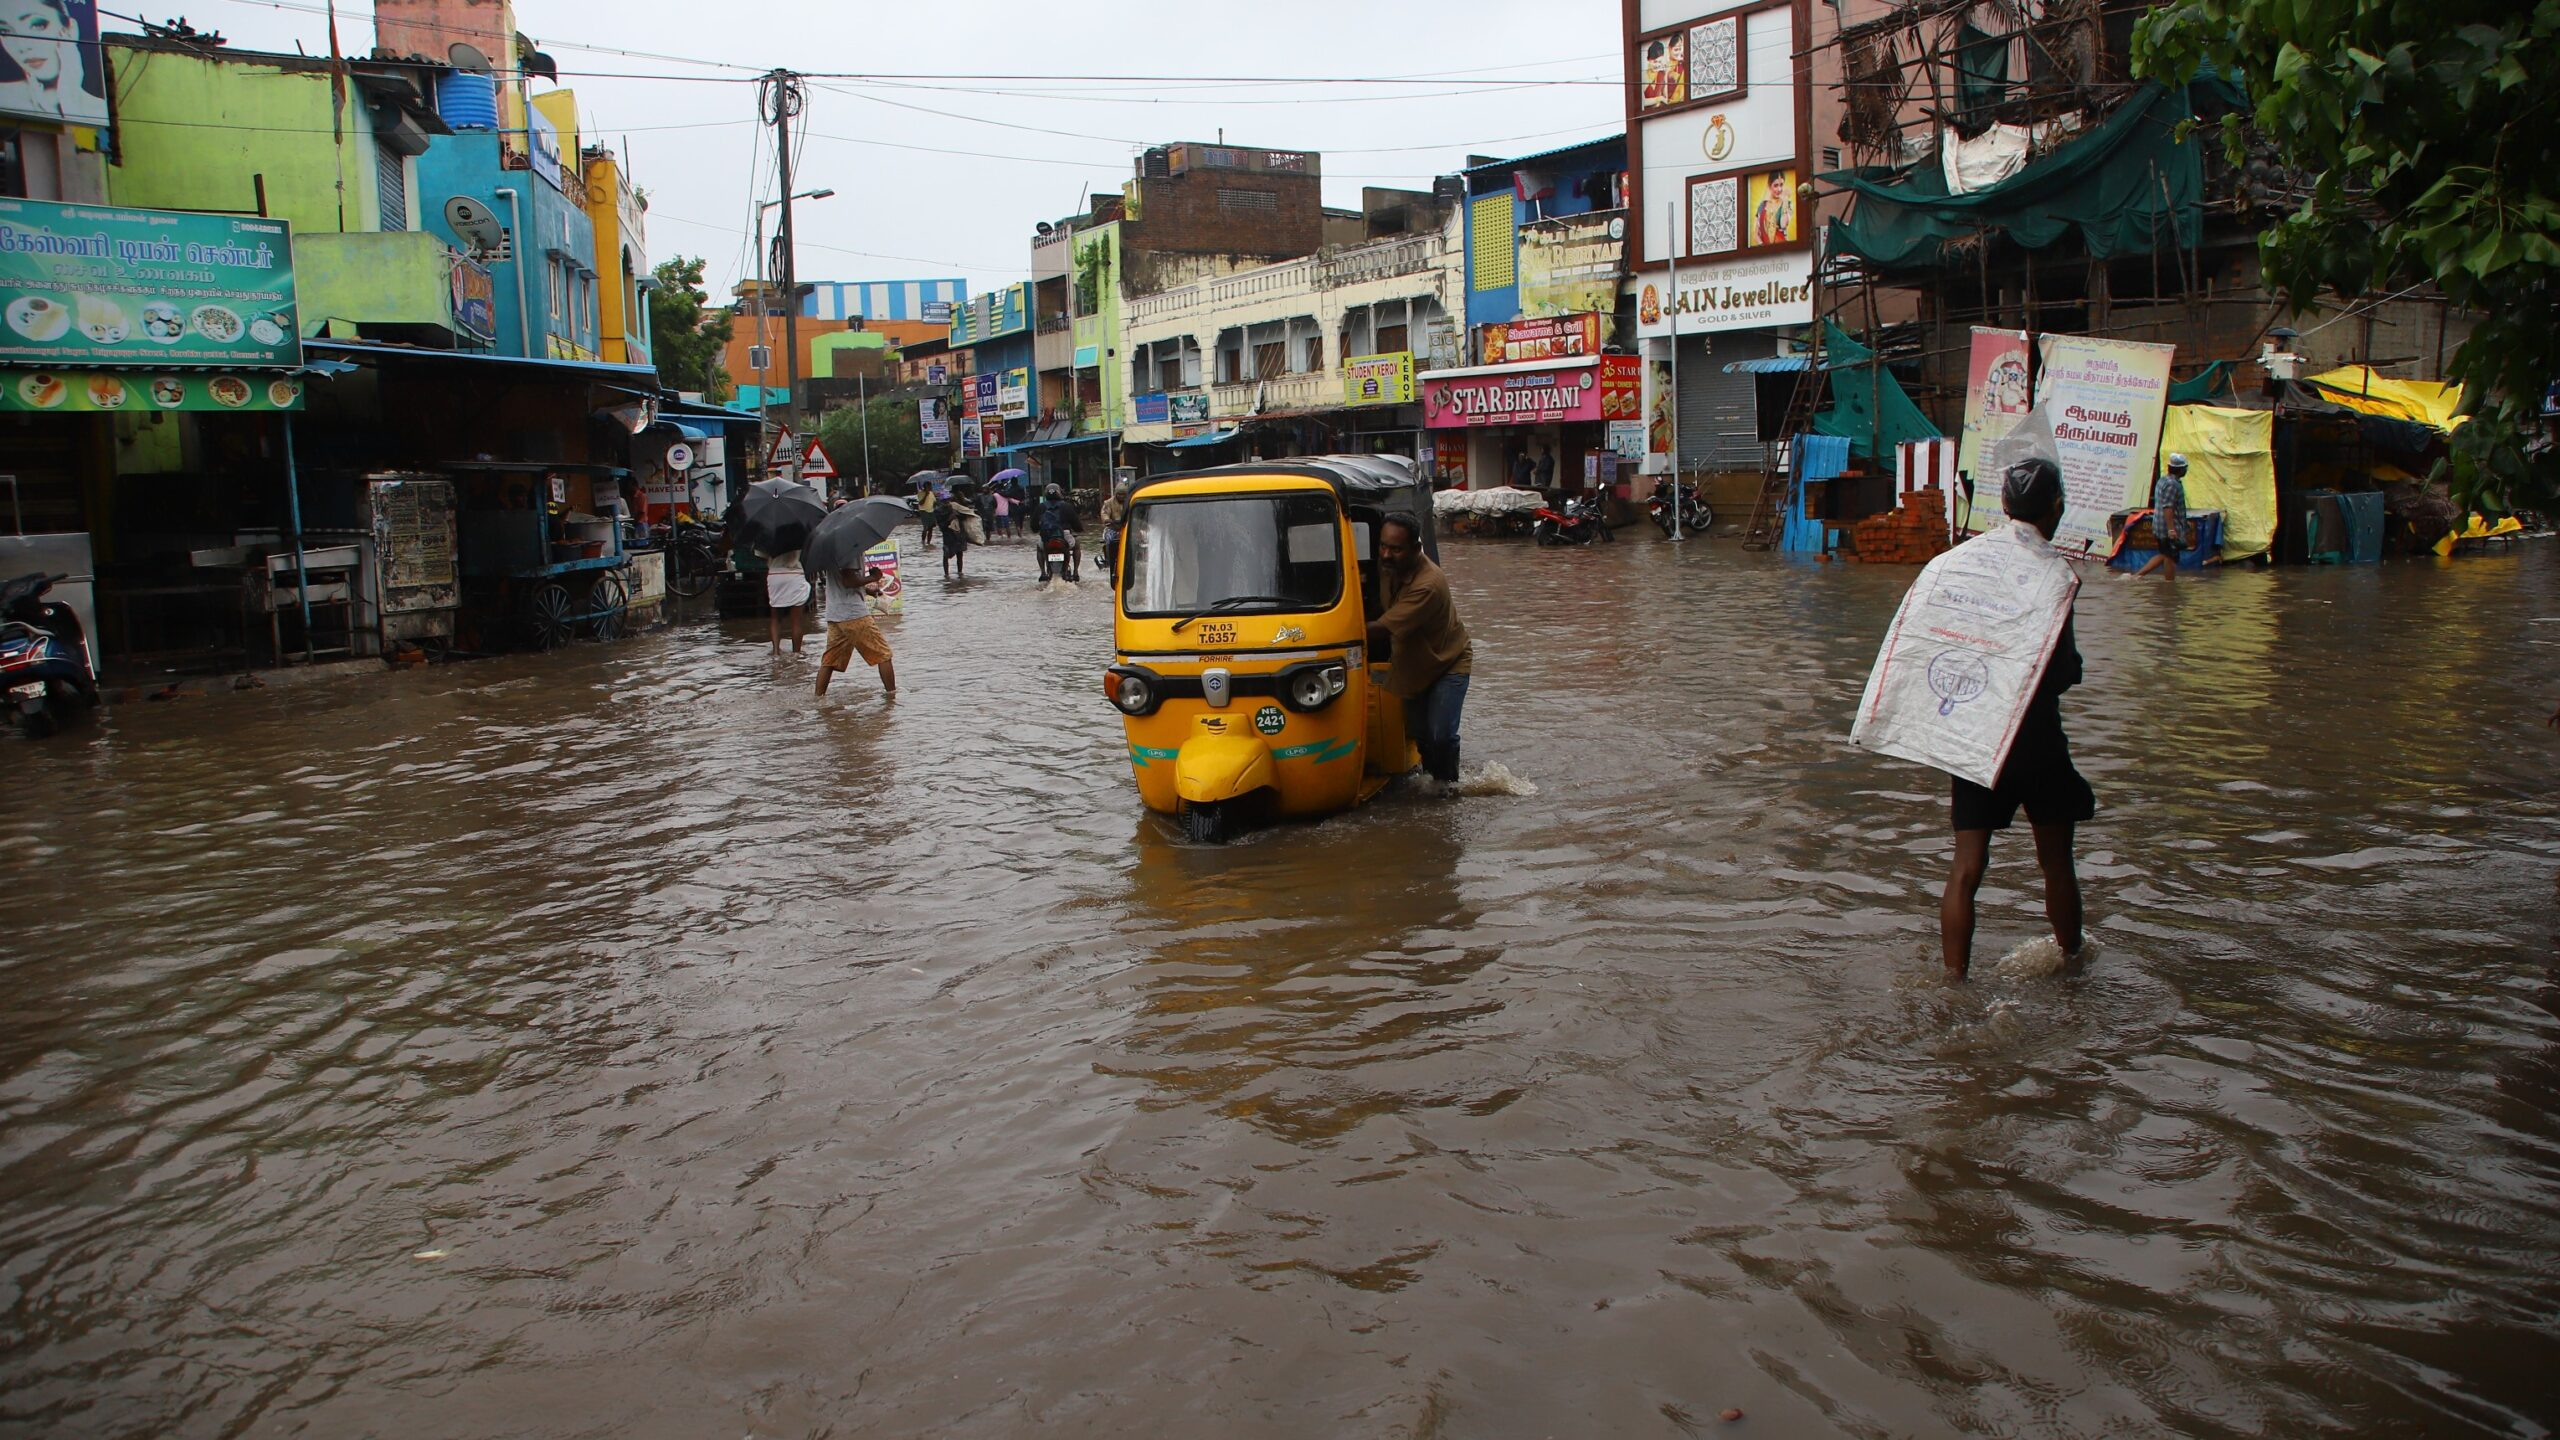 Cyclone Nivar Floods India's Chennai after Dry Summer